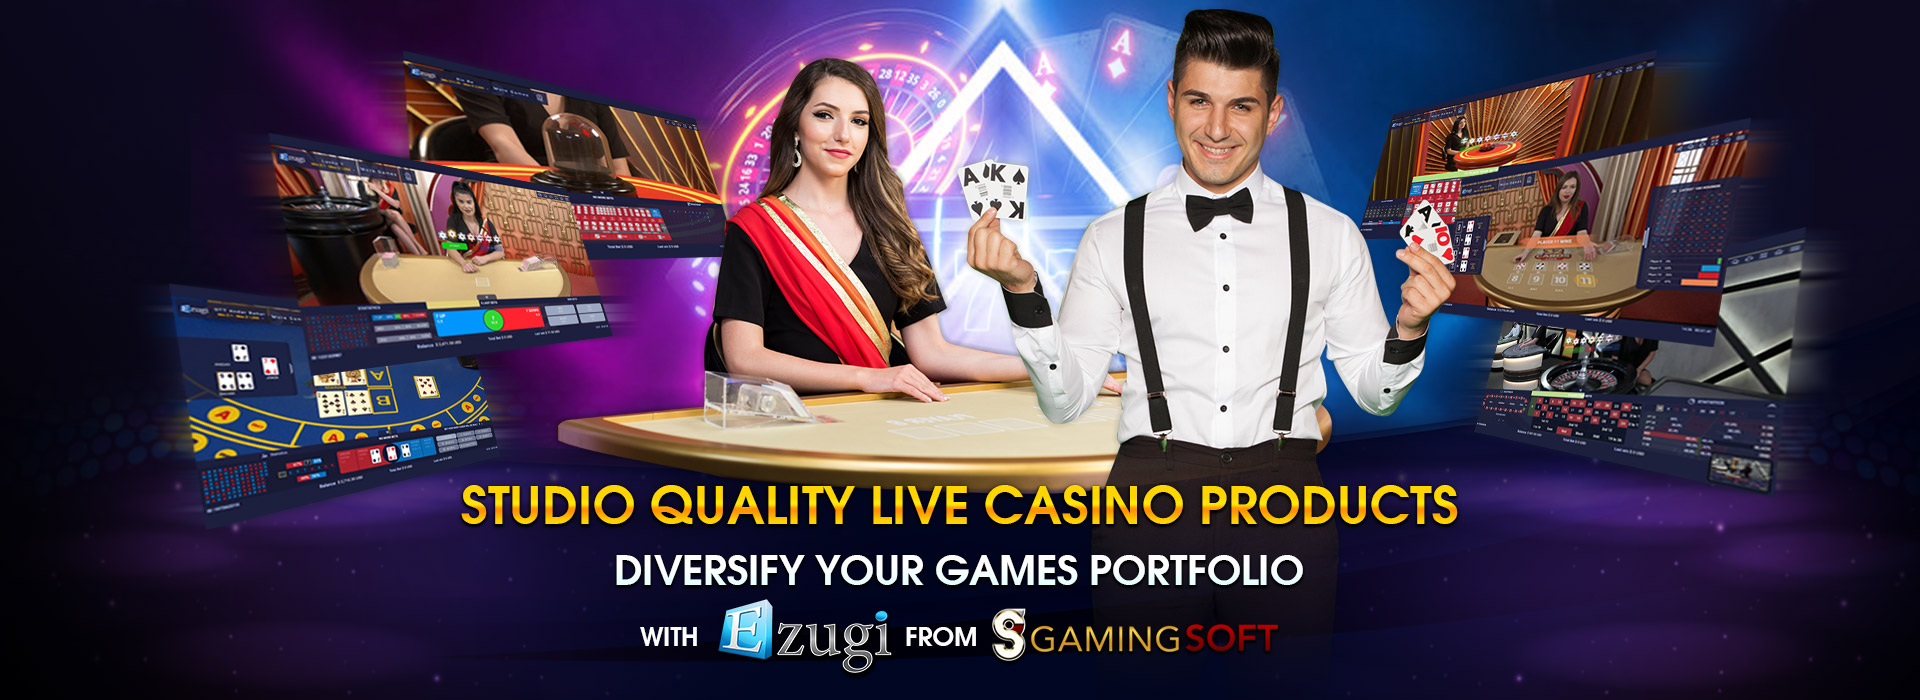 Integrate the High Quality Streaming Live Casino Products from Ezugi into your own Cloud-based Gaming Platform to Diversify your Game Portfolio - GamingSoft